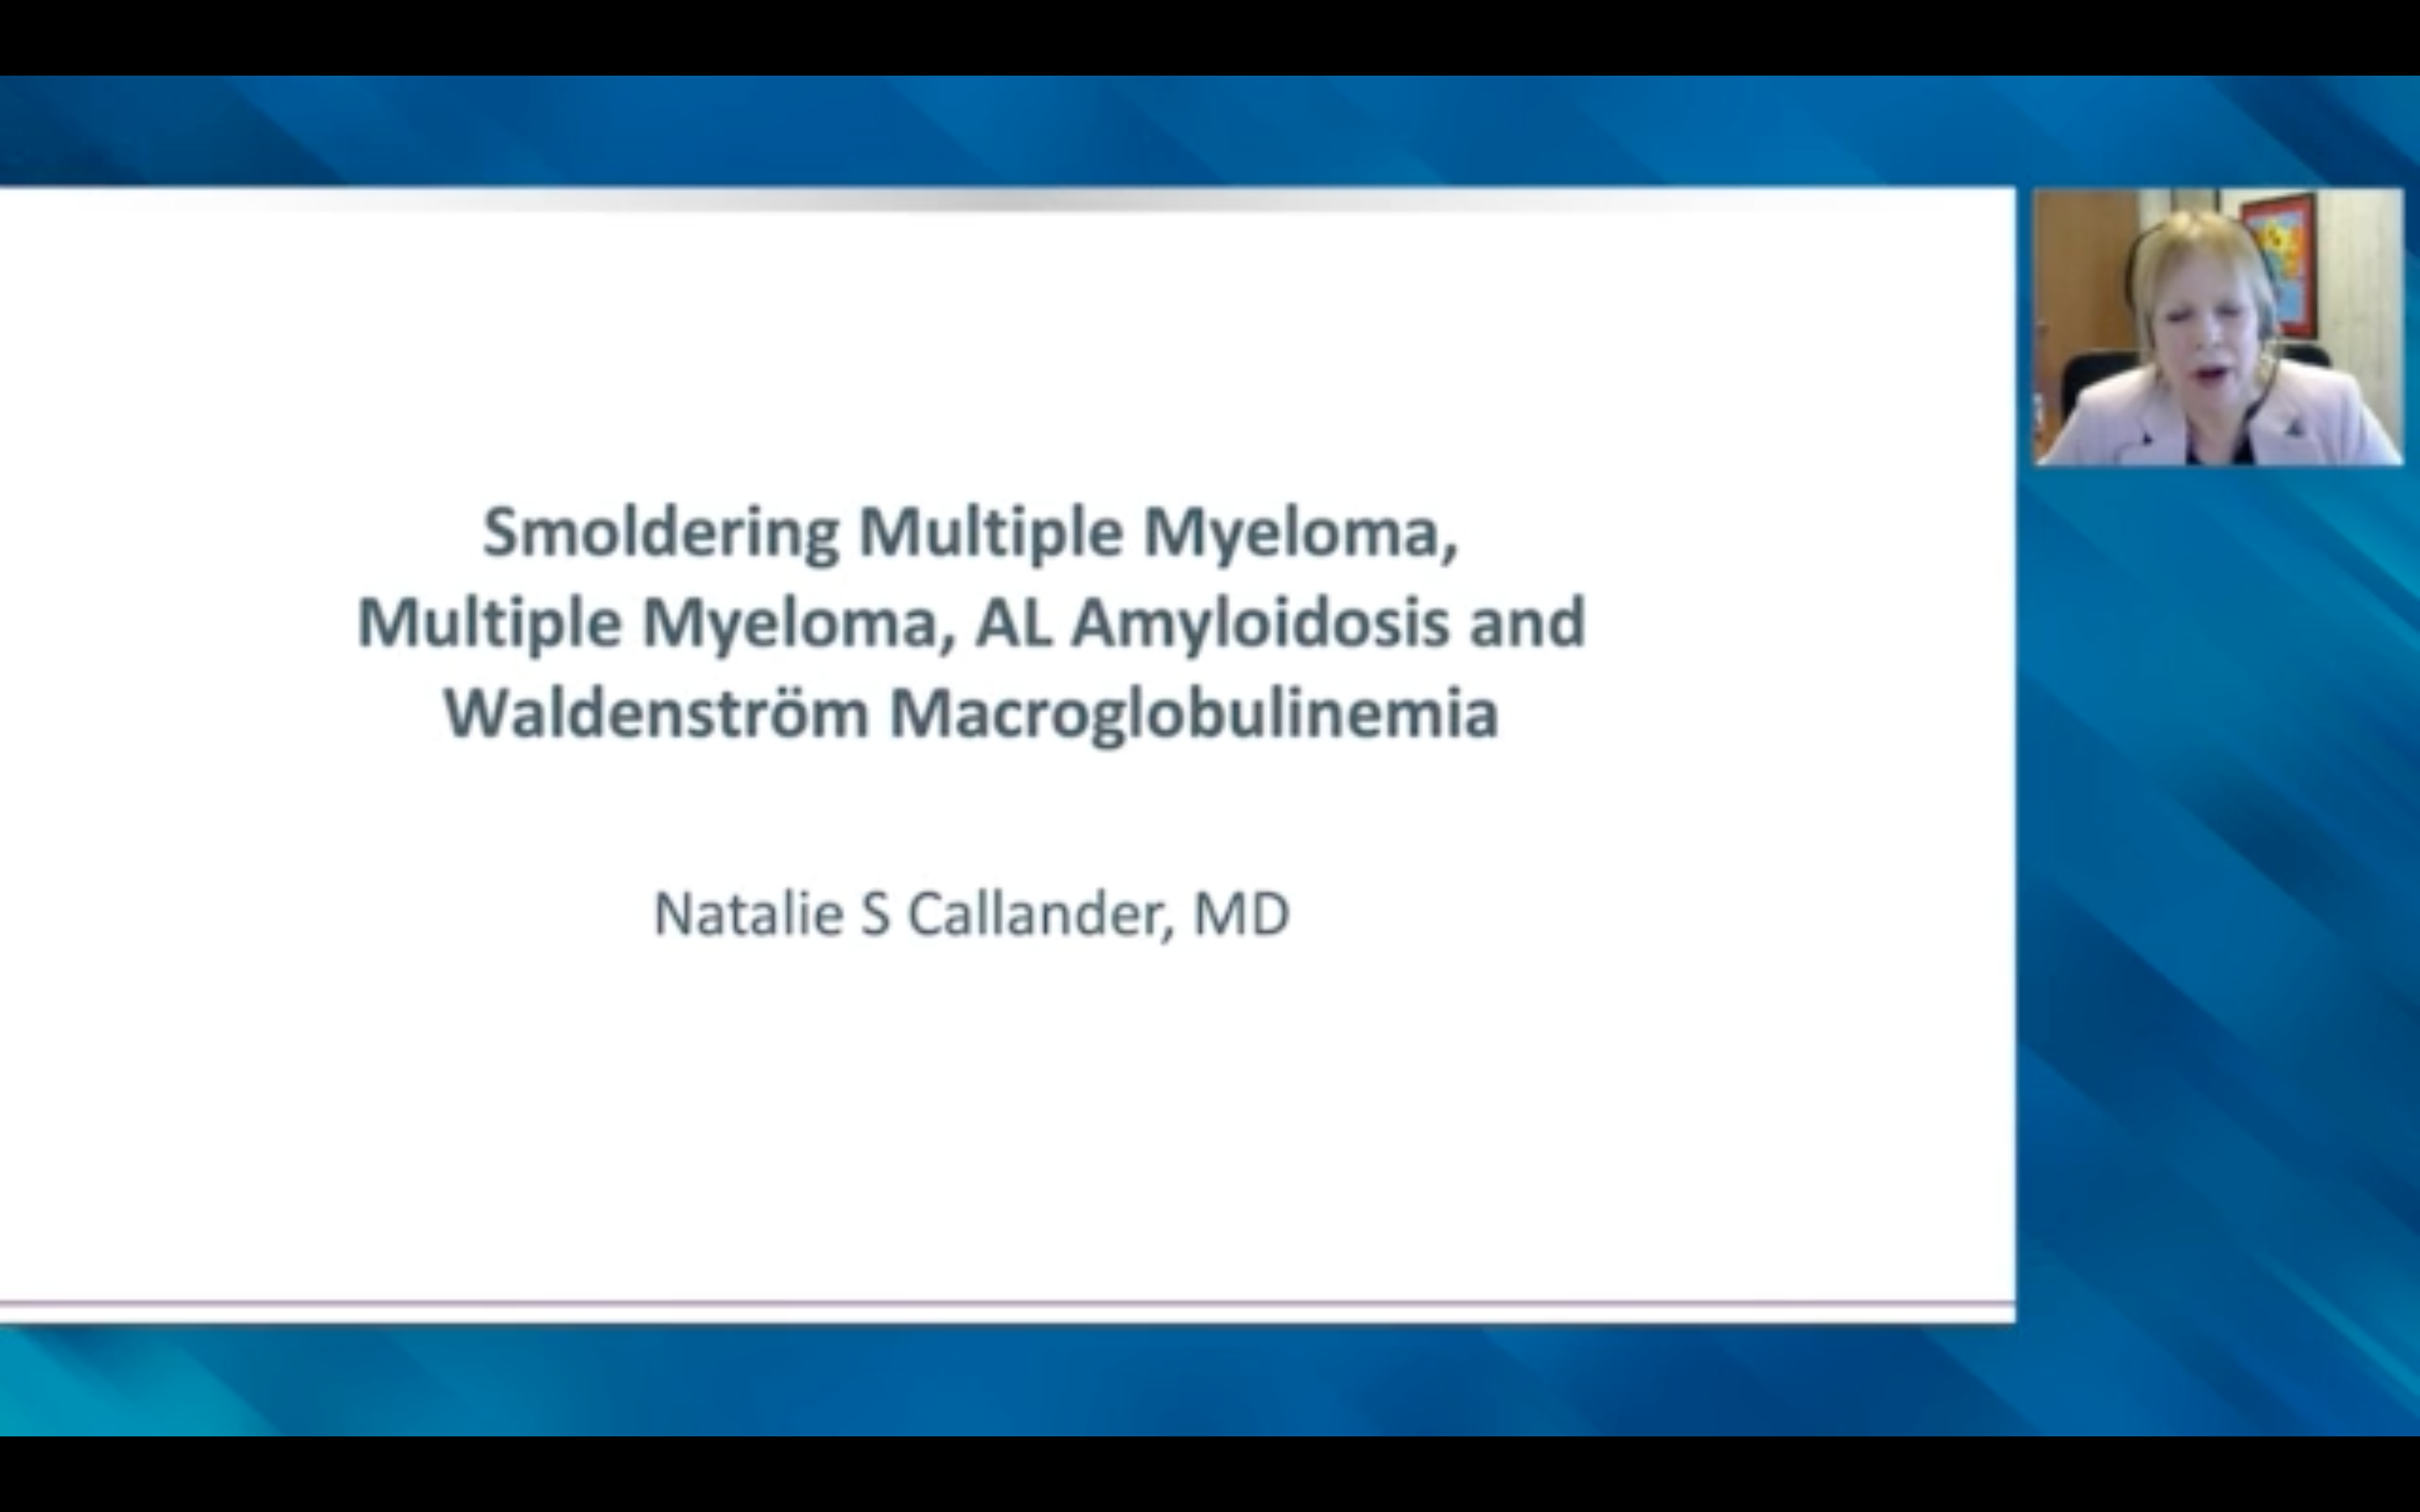 Artwork for Hematologic Oncology | Oncology Today with Dr Neil Love: Key Presentations on Multiple Myeloma, Waldenström Macroglobulinemia and Amyloidosis from the 2020 ASH Annual Meeting